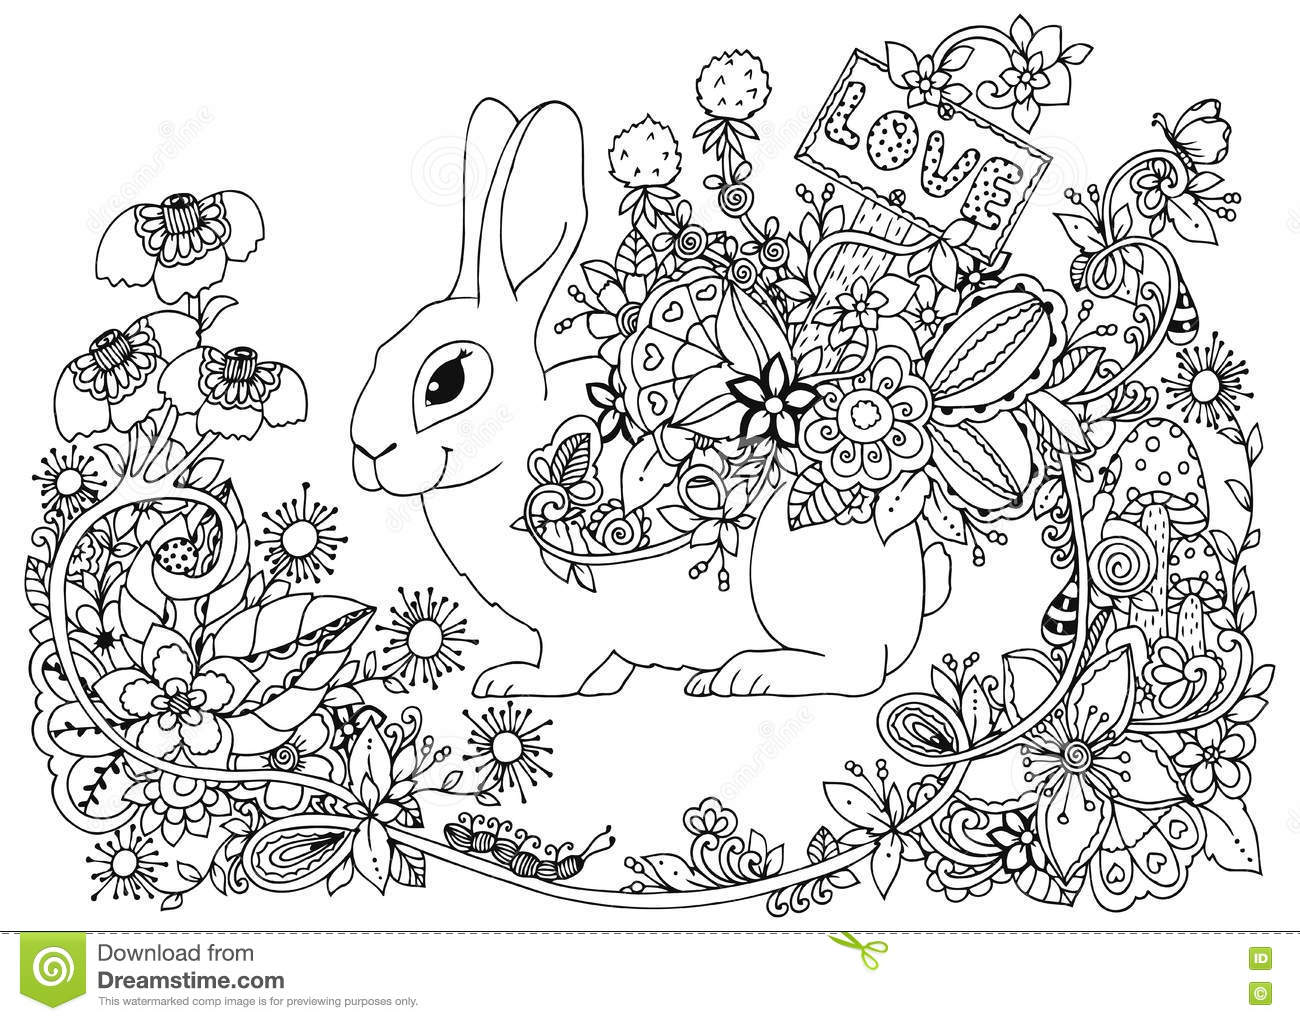 Vector Illustration Rabbit In Flower Frame Doodle Drawing Coloring Book Anti Stress For Adults